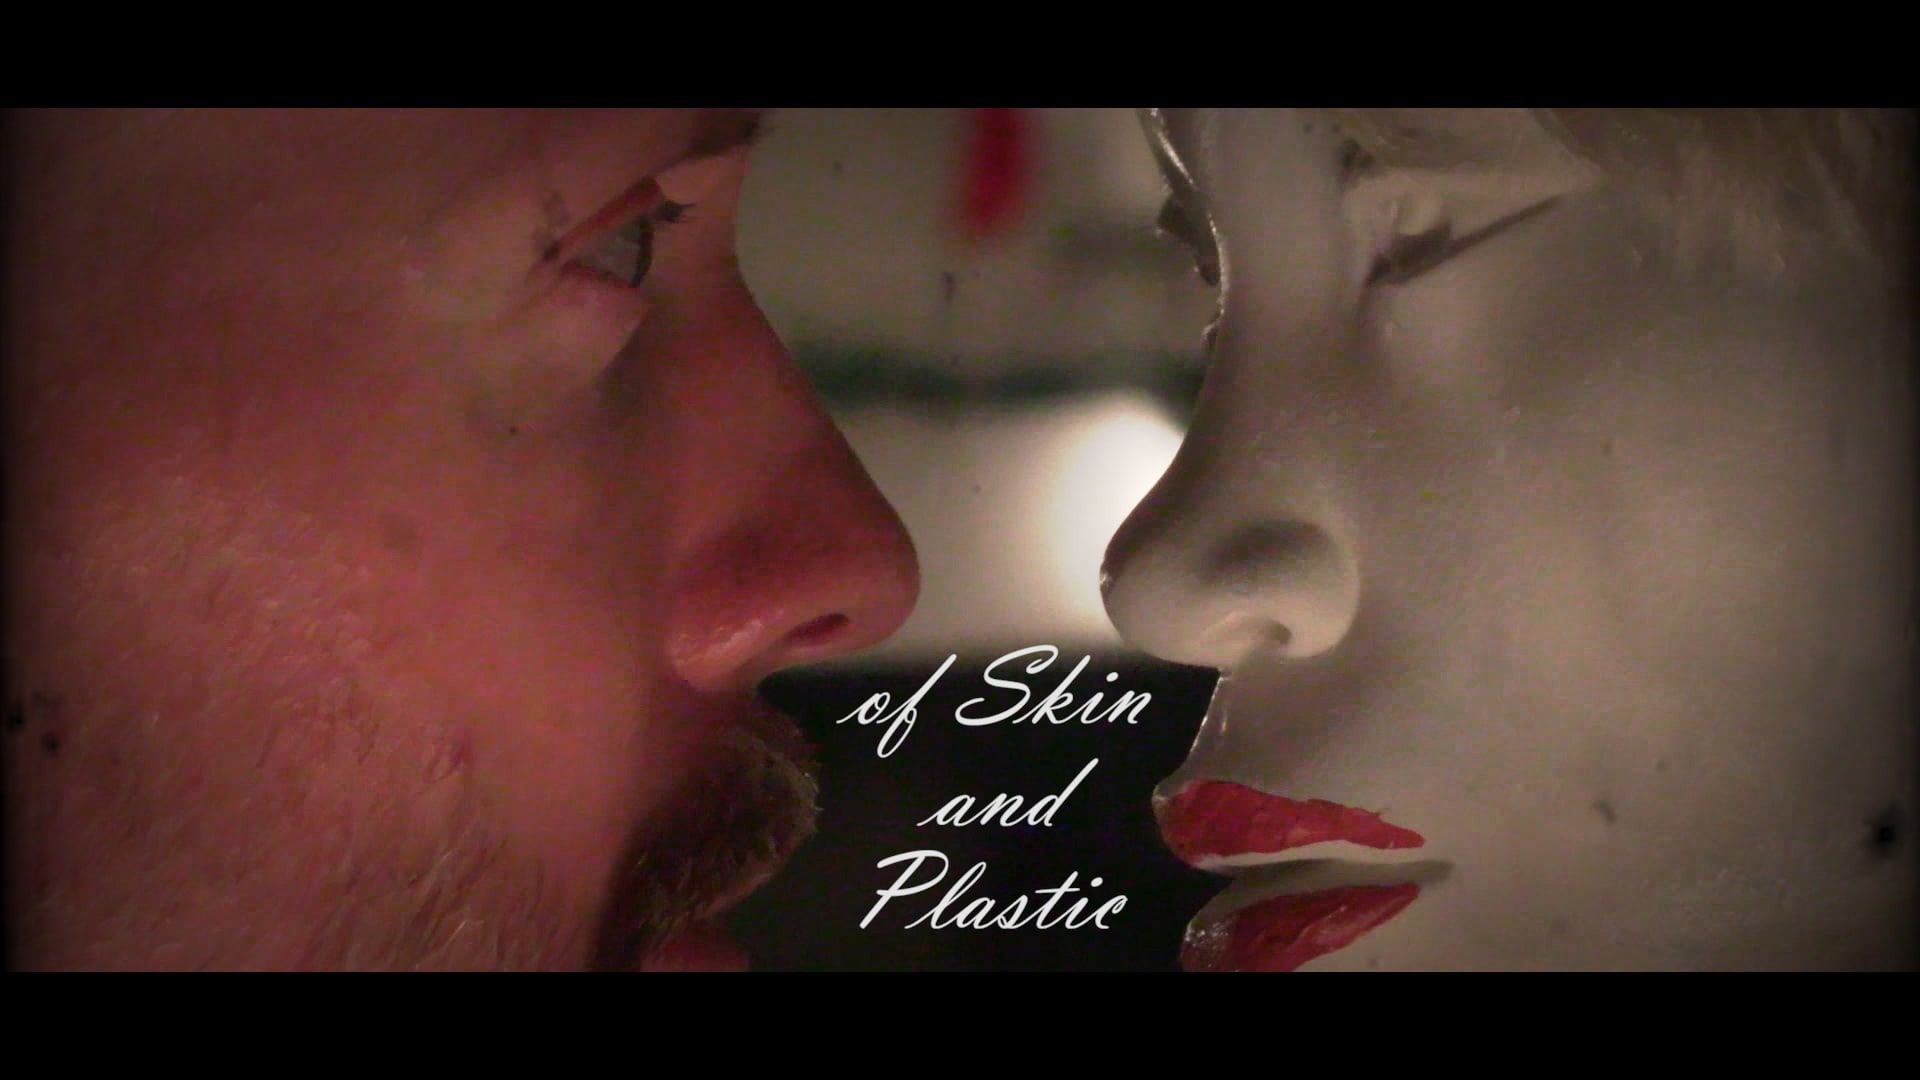 Of Skin and Plastic (2018) | Student Short